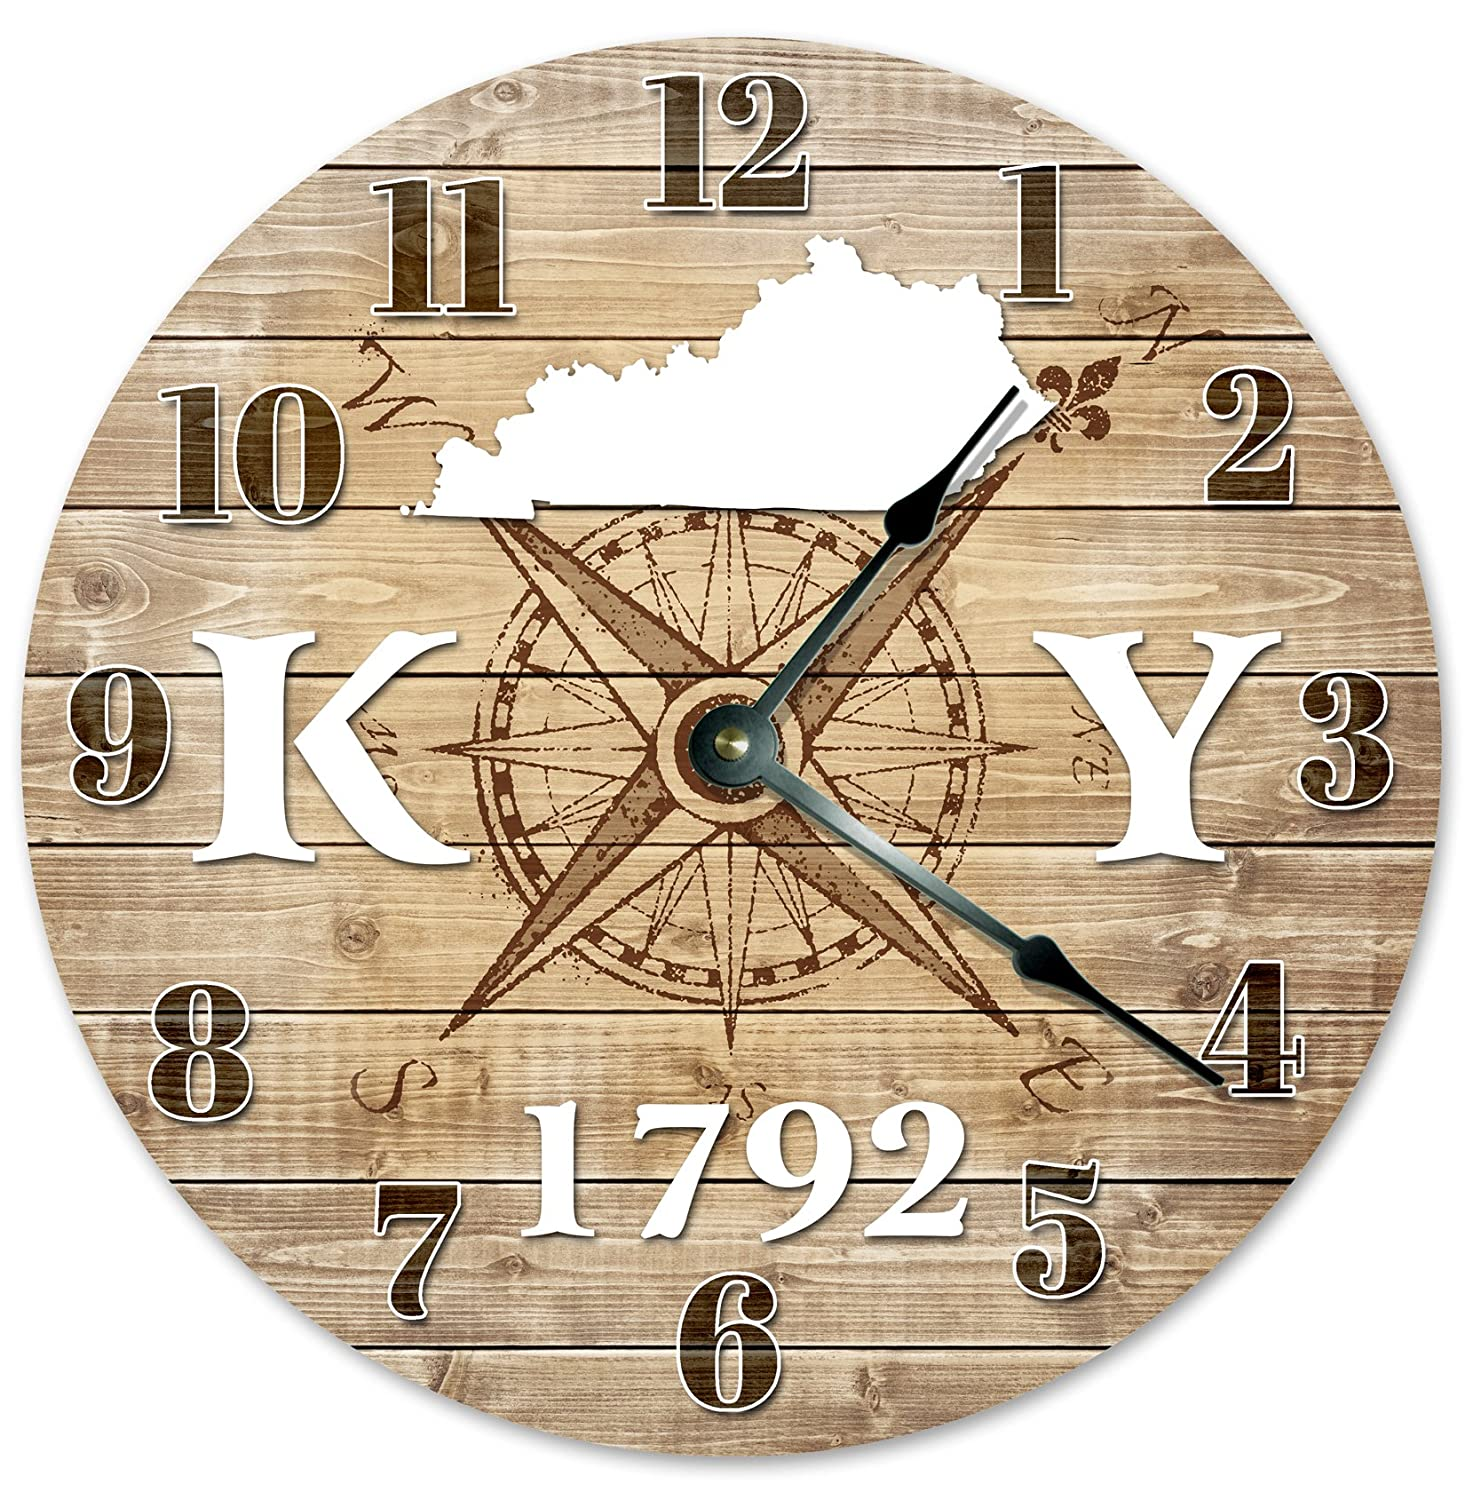 KENTUCKY CLOCK Established in 1792 Decorative Round Wall Clock Home Decor Large 10.5